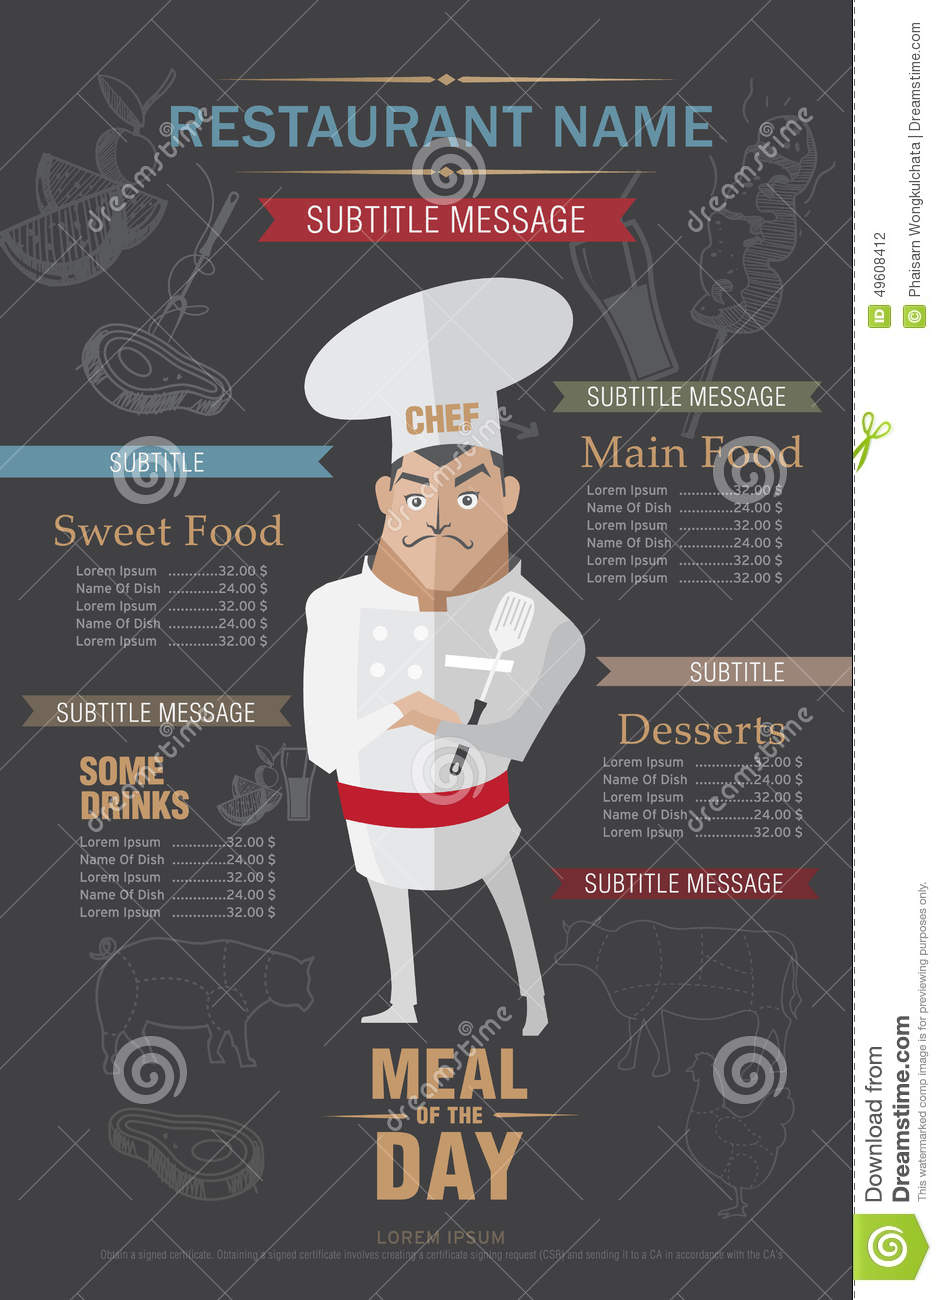 Restaurant Menu Design Template Stock Vector Illustration Of Background Cafe 49608412